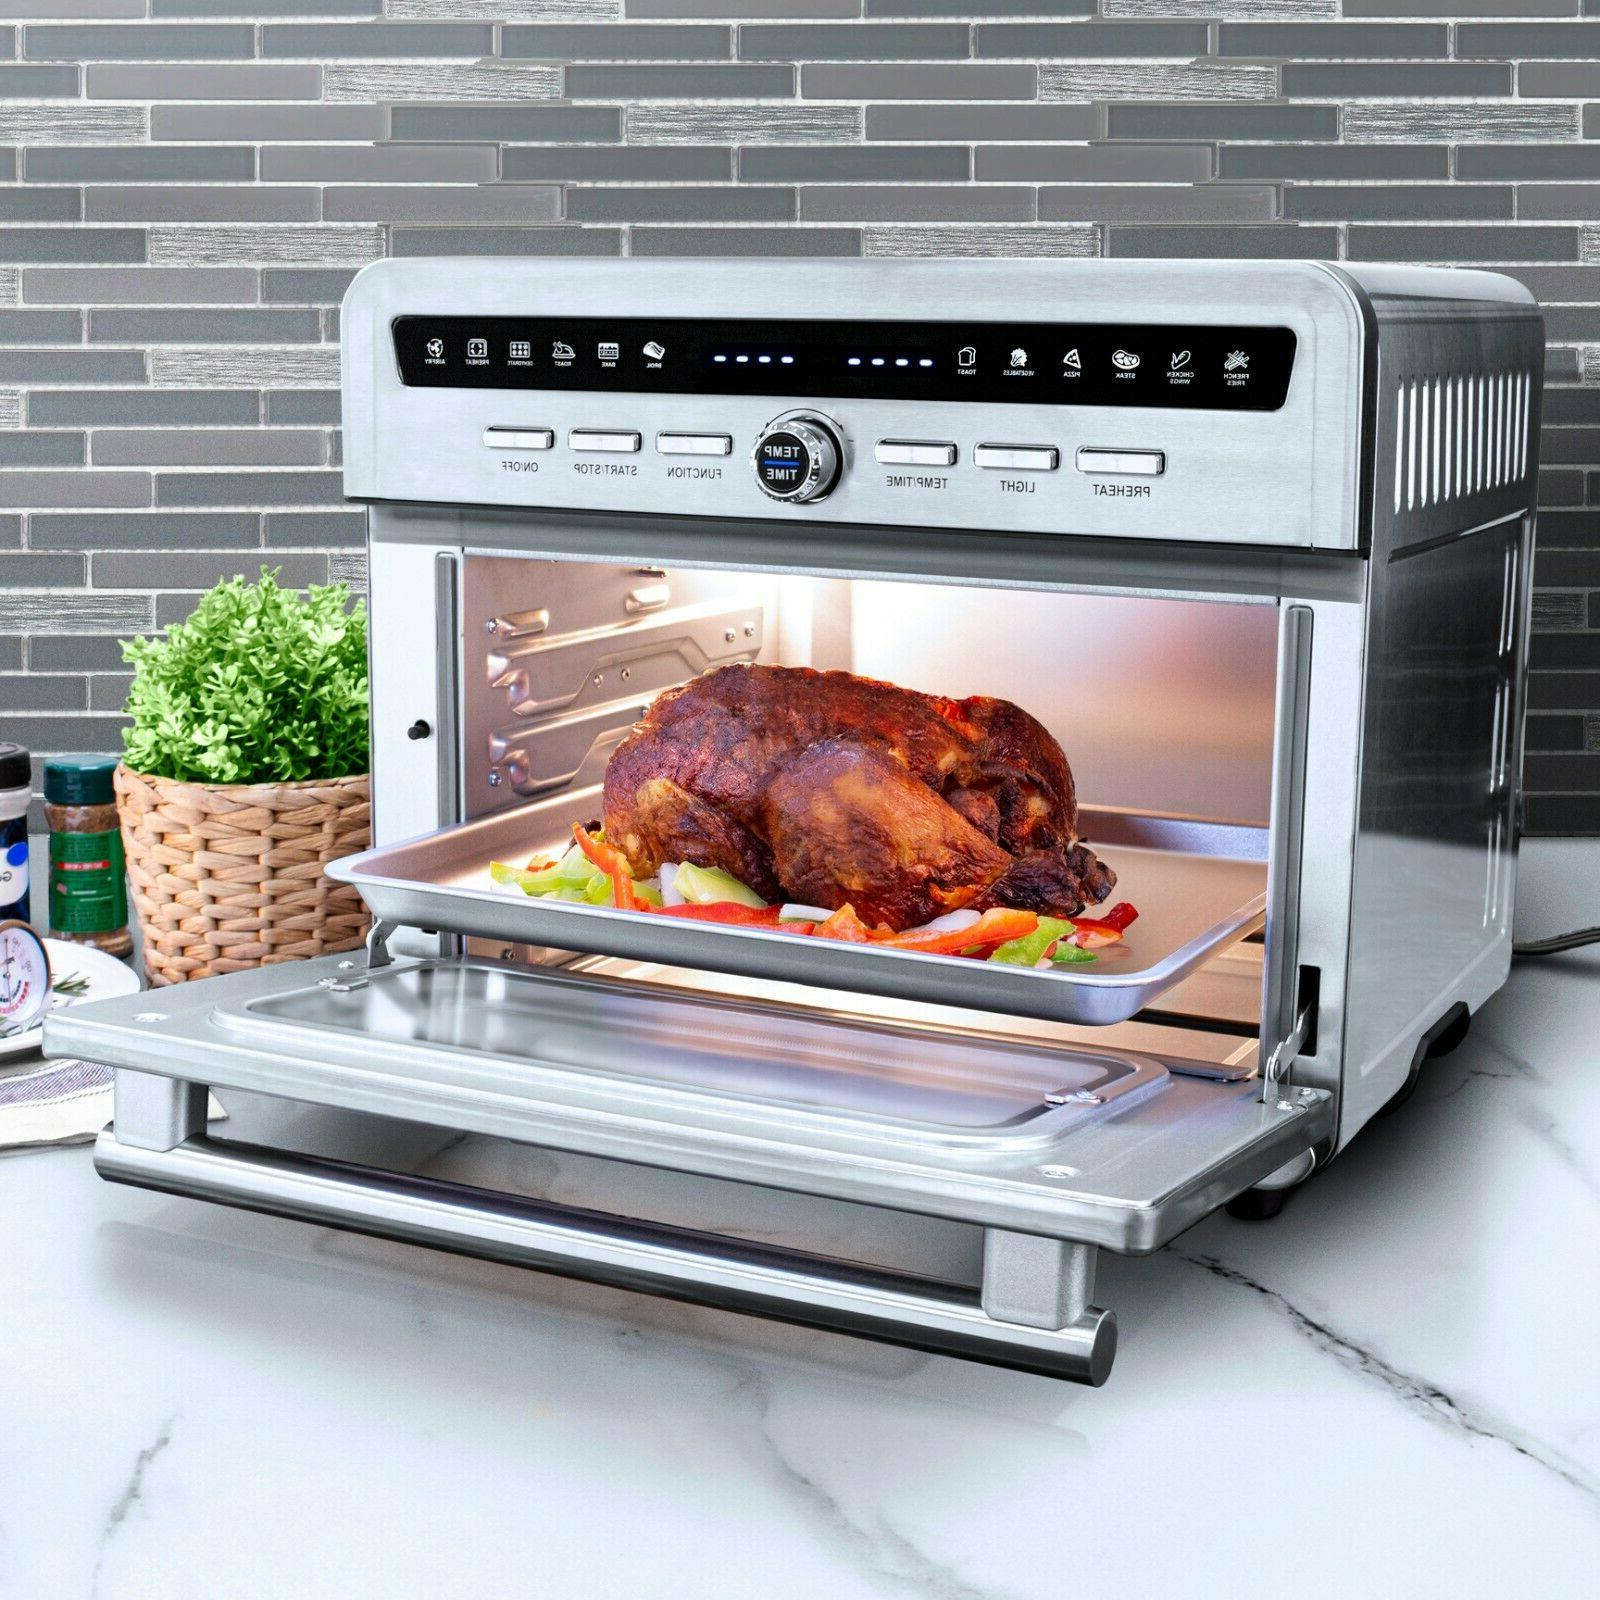 Rosewill Convection Toaster Oven, Size 26.4 Capacity